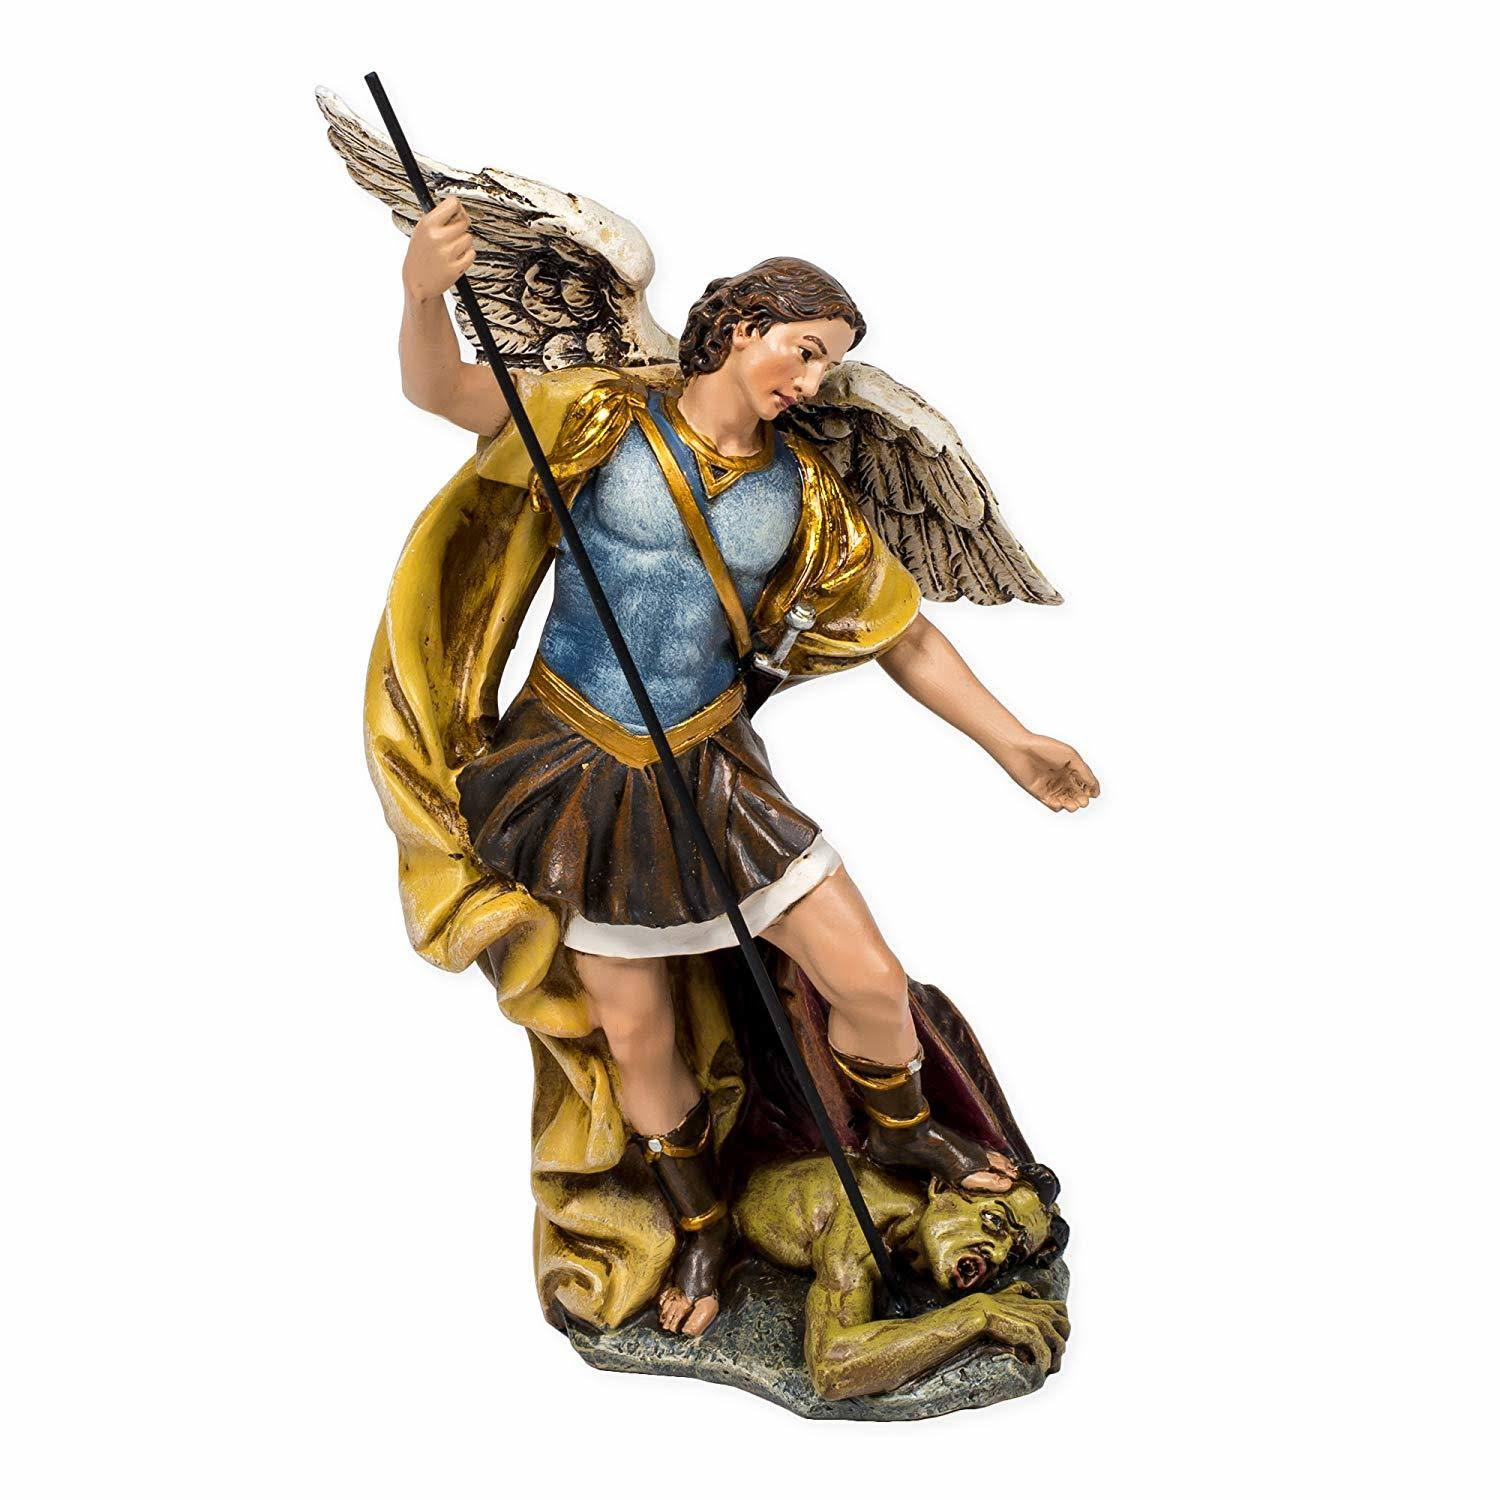 Joseph Studio St. Michael The Archangel Defeating Satan Figurine Statue